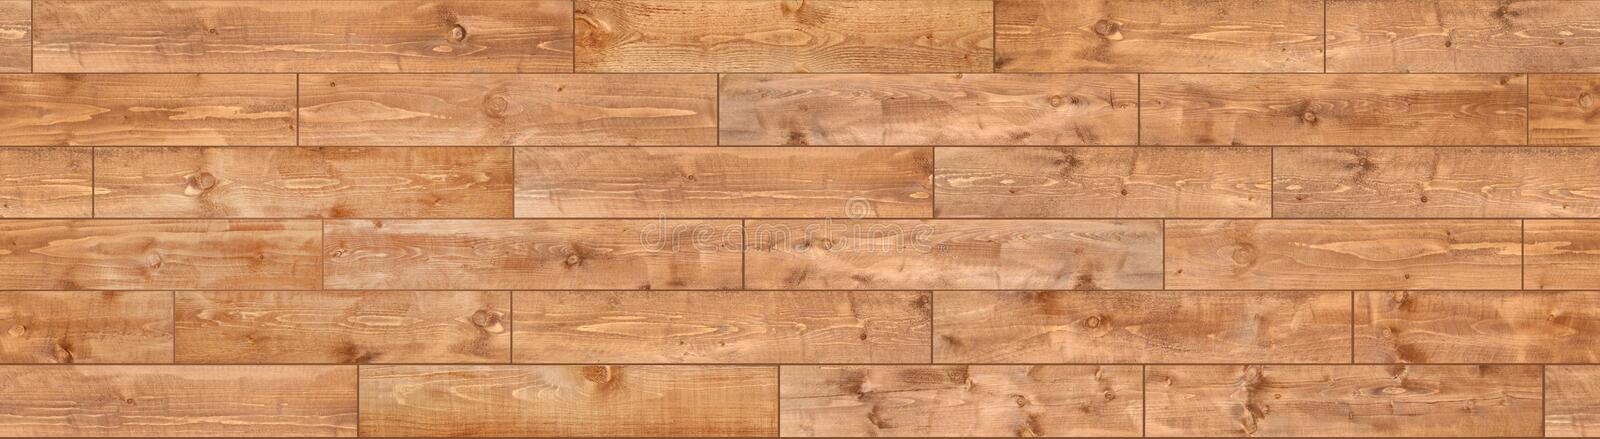 Seamless light wood floor texture. Wooden parquet. Flooring. Seamless wood floor texture. Wooden parquet. Flooring royalty free stock photography